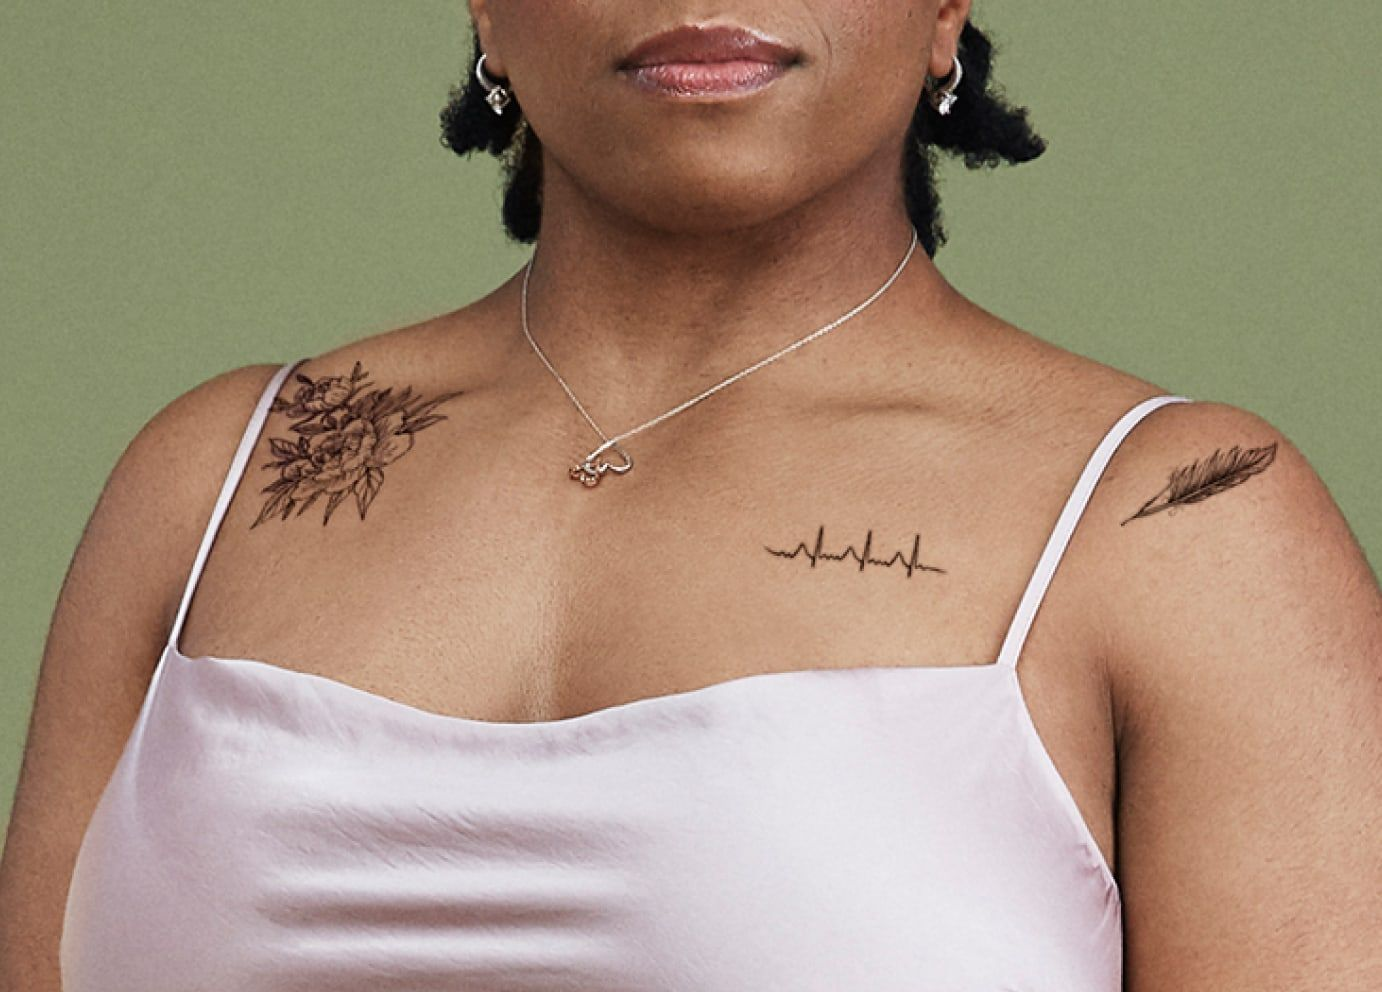 temporary tattoo idea for women on clavicle and shoulder flower line design